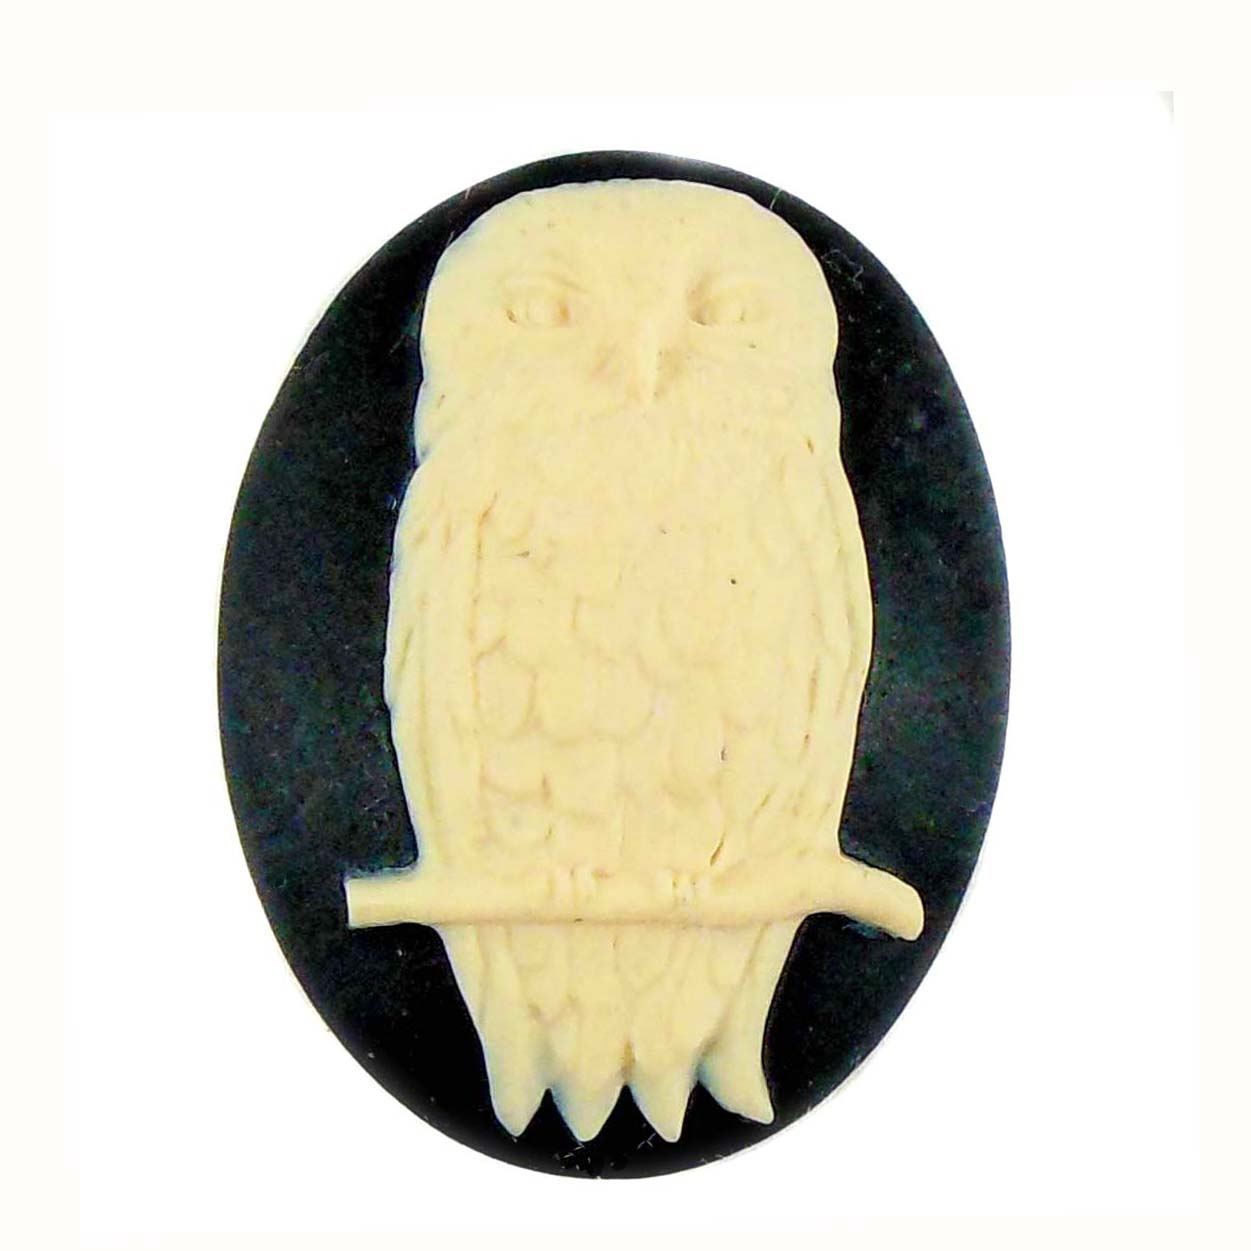 cameo, owl cameo, resin, jewelry making, 40x30mm, 05367, black/creme cameo, owl jewelry, jewelry making supplies, vintage jewelry supplies, imported resin, bsueboutiques